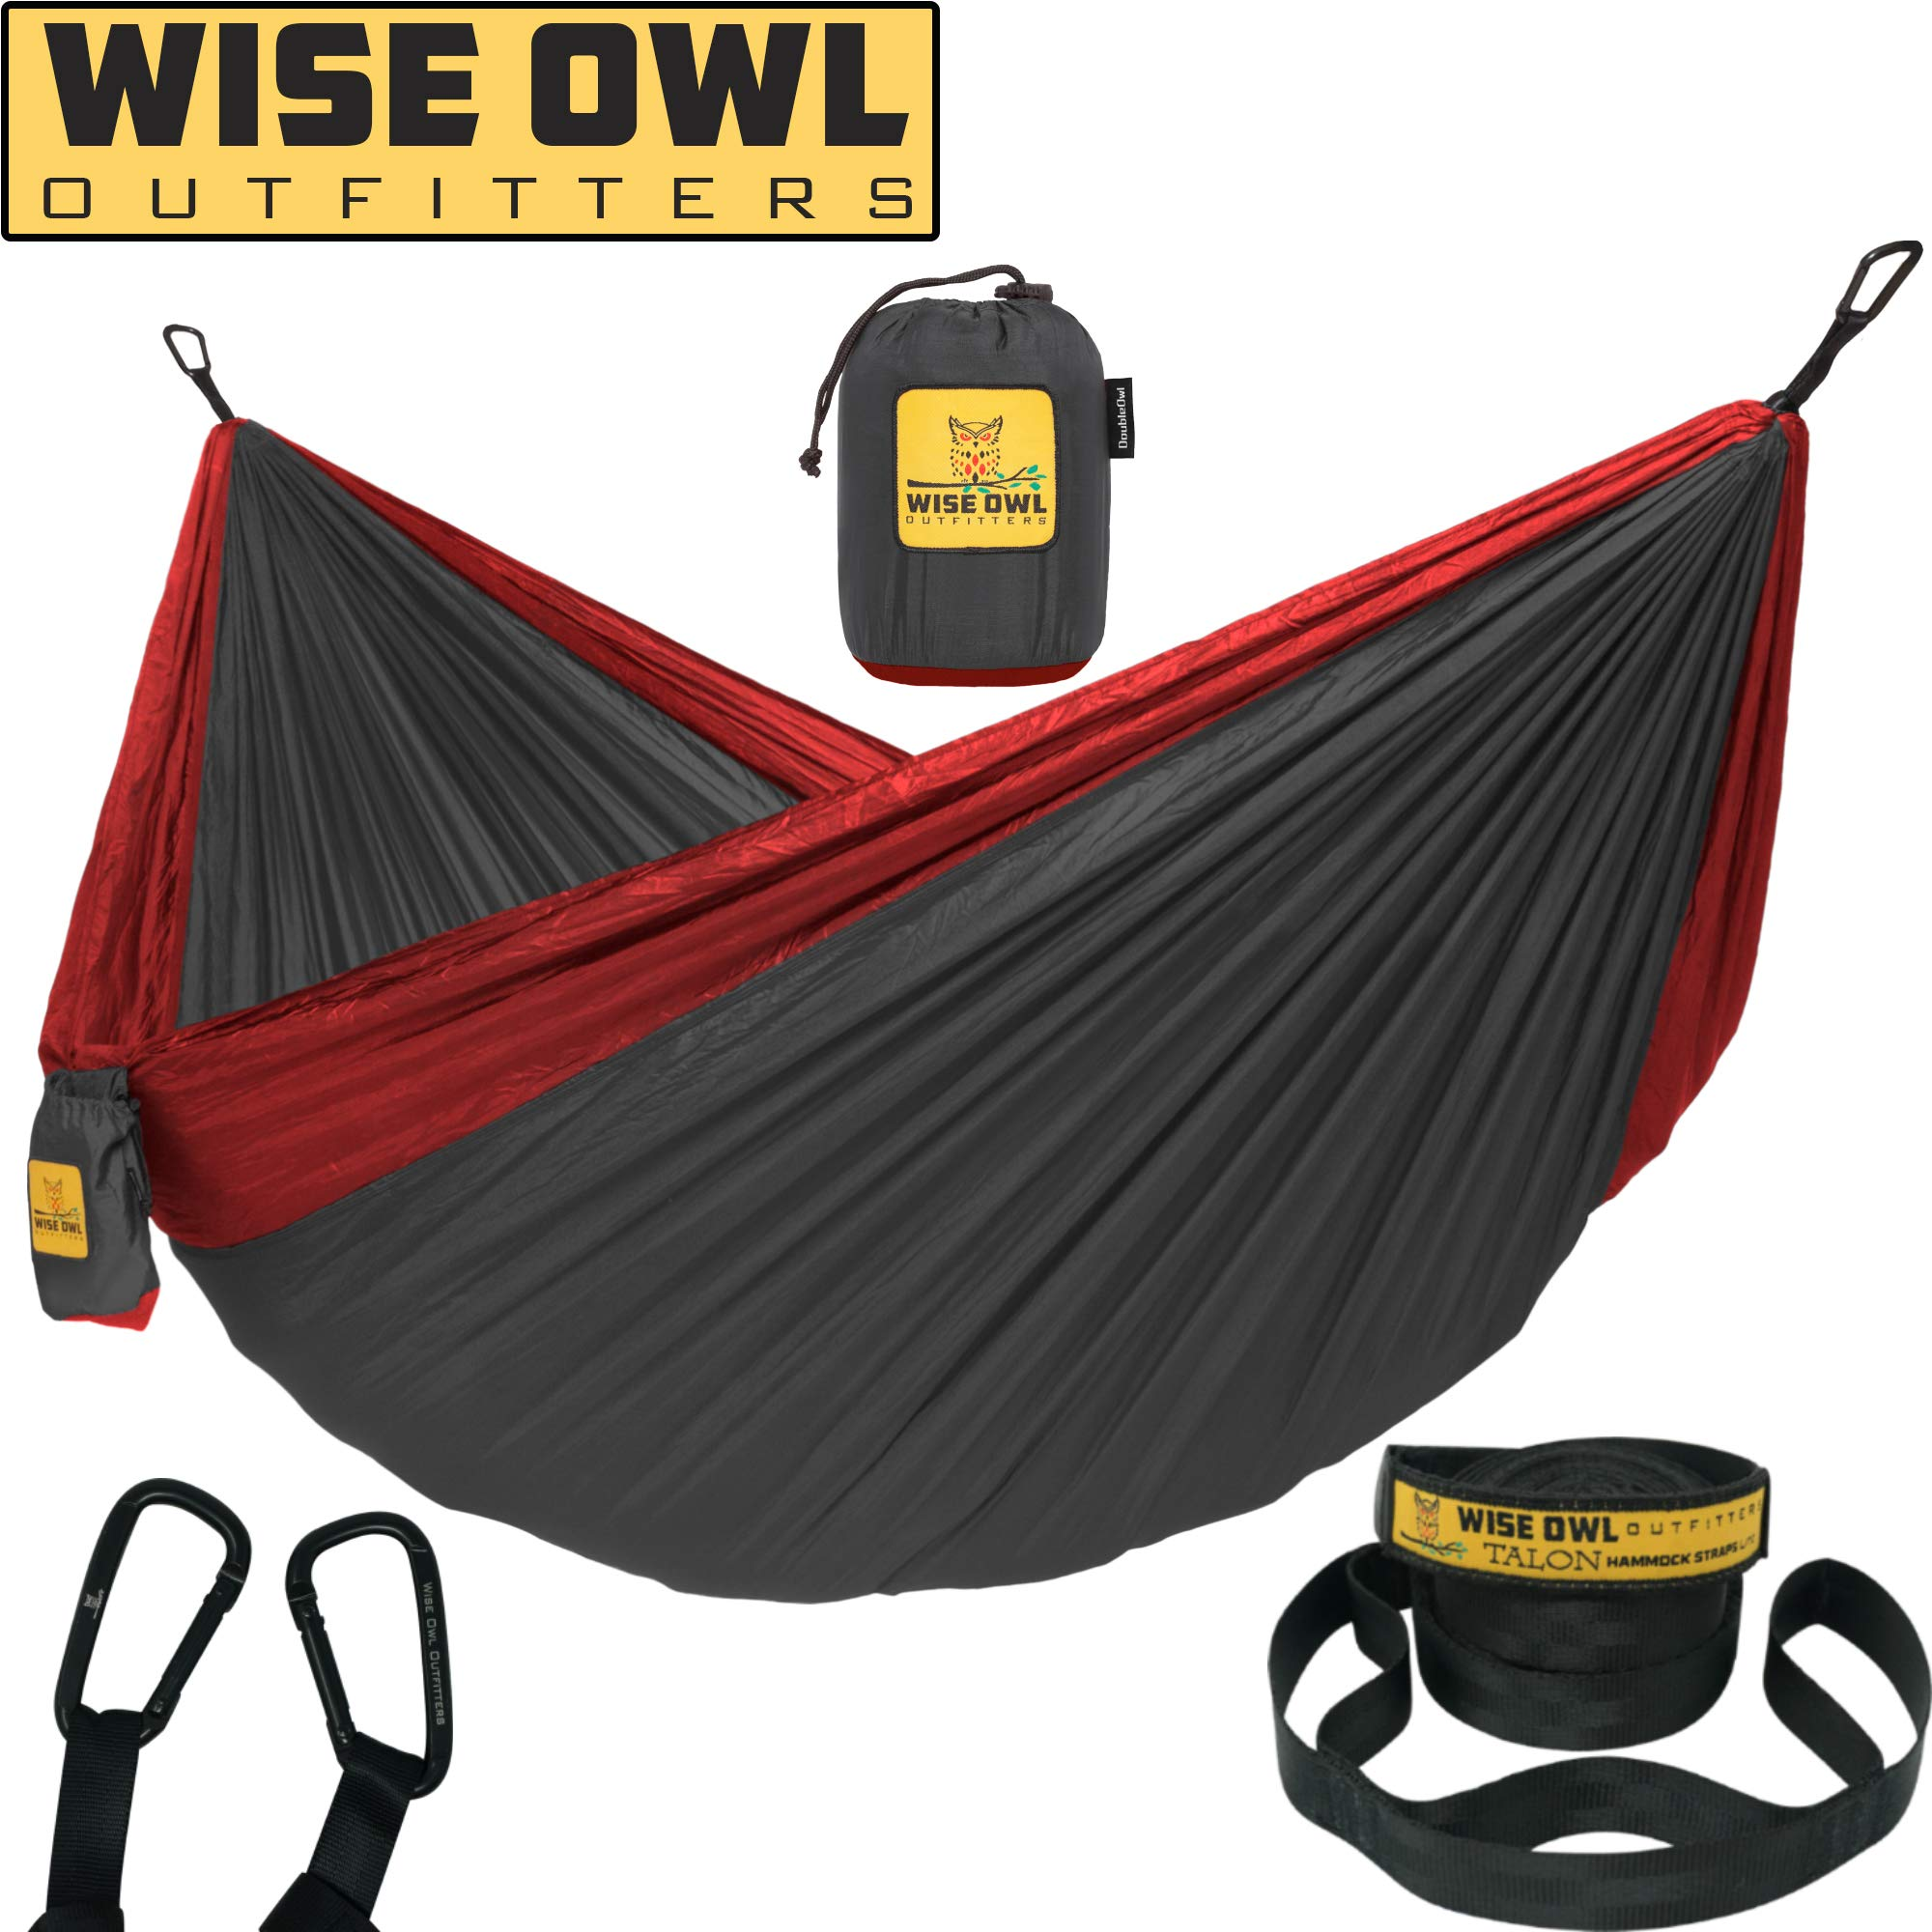 Wise Owl Outfitters Hammock for Camping Single & Double Hammocks Gear for The Outdoors Backpacking Survival or Travel - Portable Lightweight Parachute Nylon DO Charcoal & Red by Wise Owl Outfitters